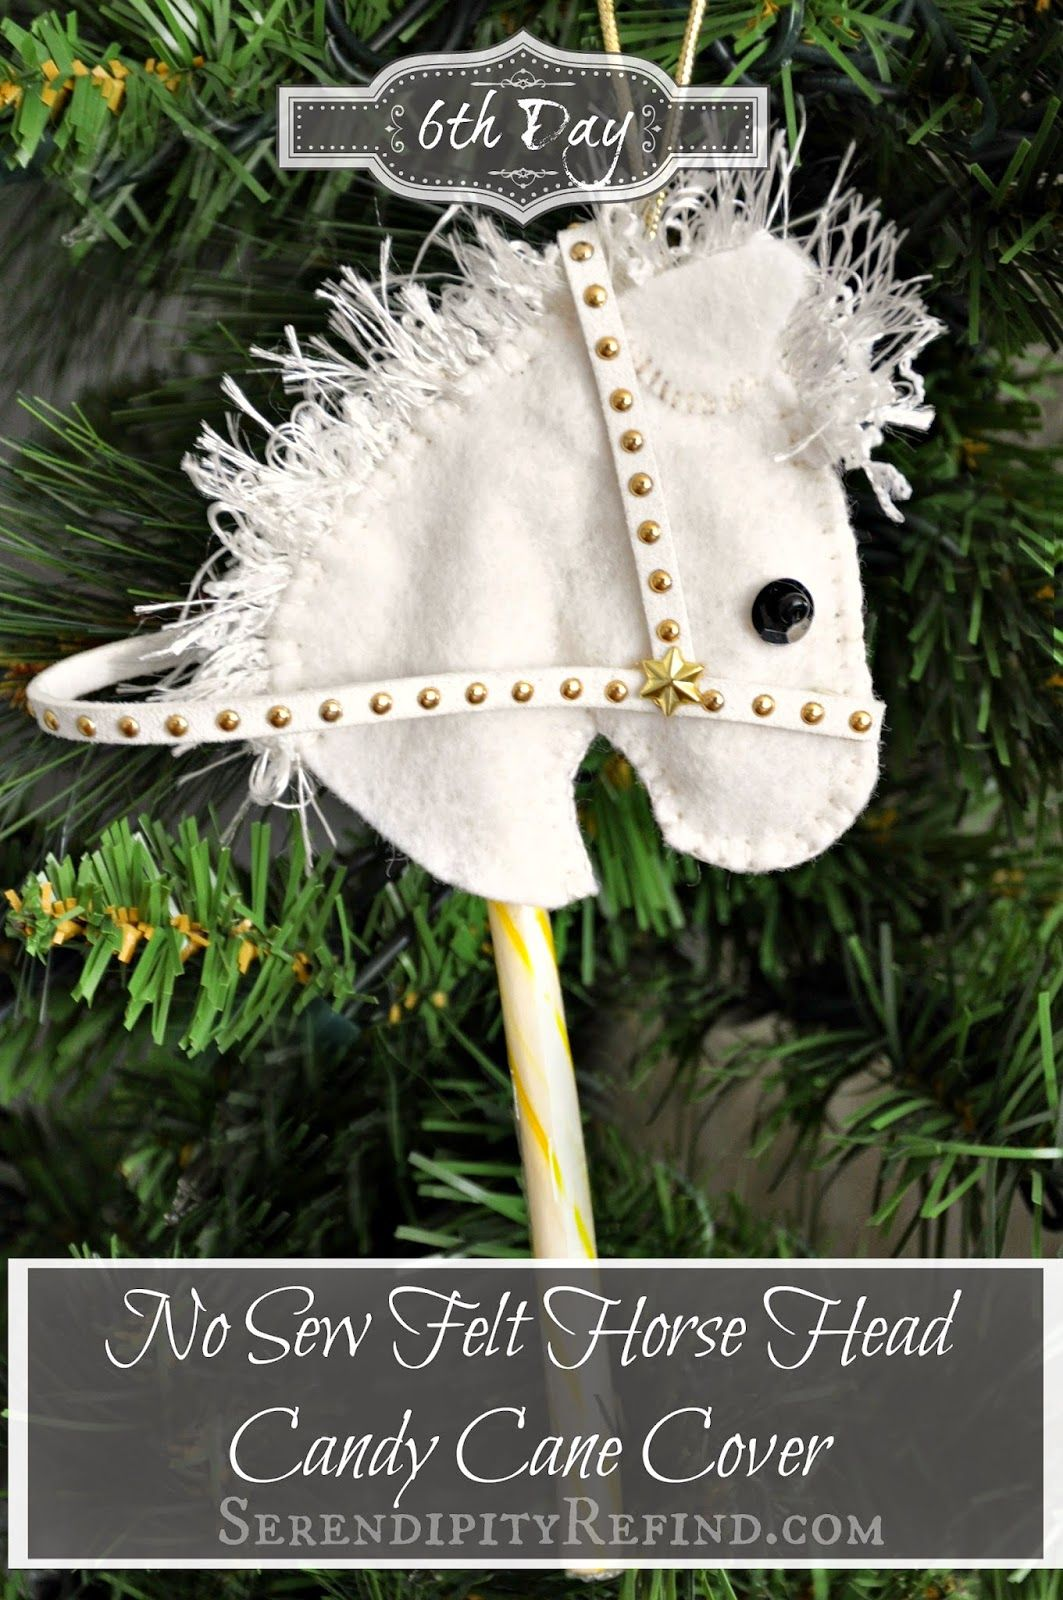 No Sew Felt Horse Head Candy Cane Cover Ornament Day 6